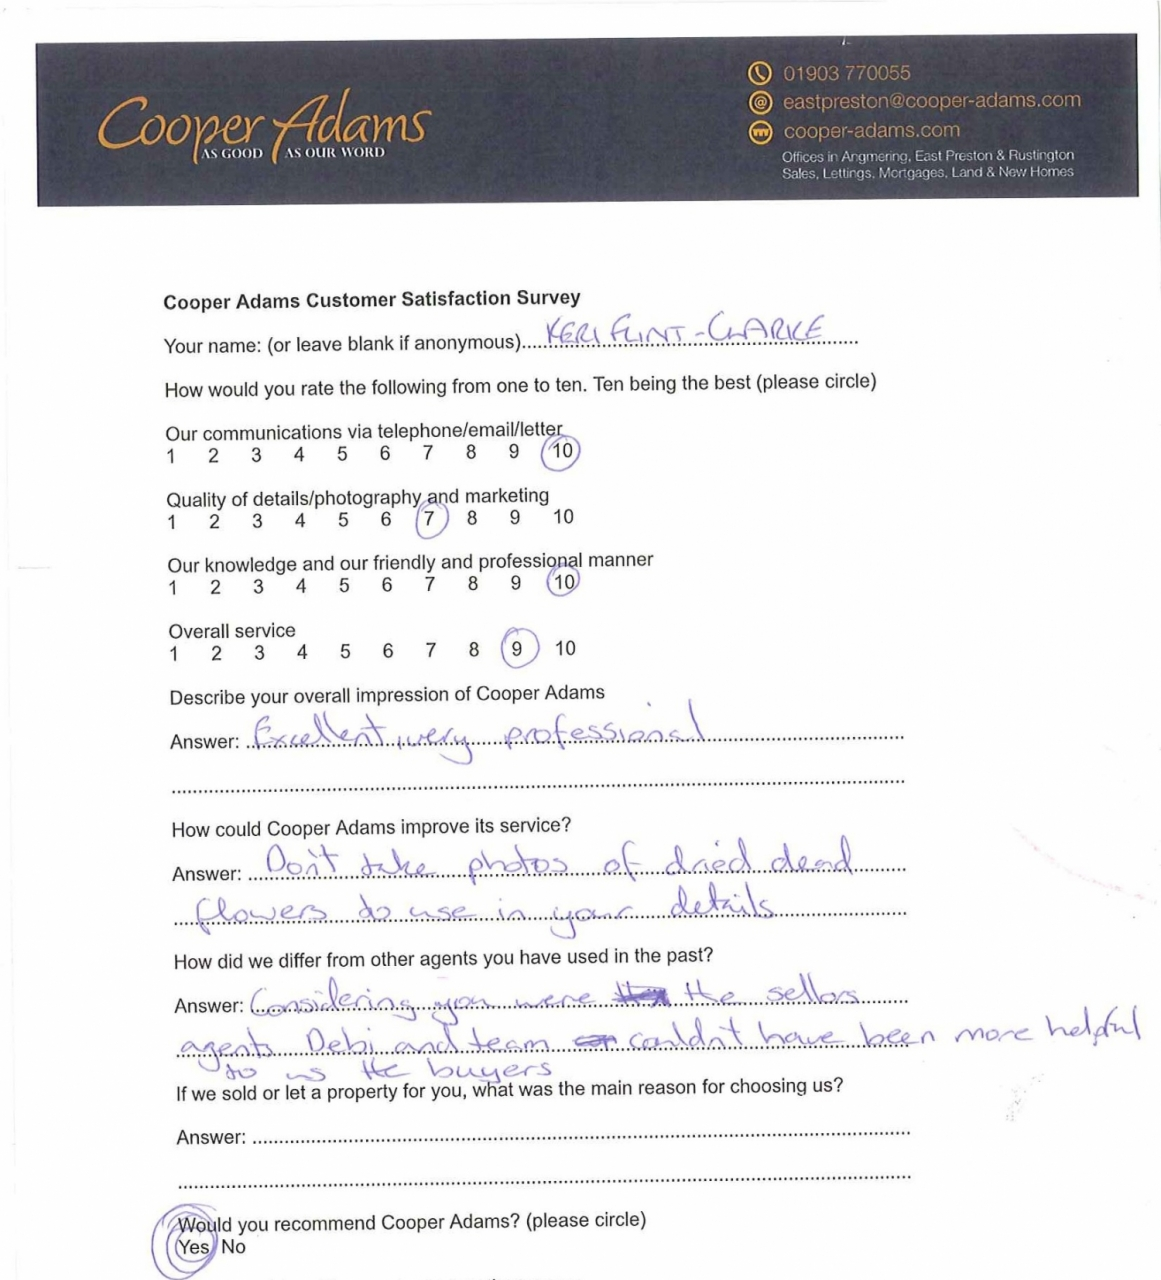 Customer satisfaction survey from Keri Flint-Clarke